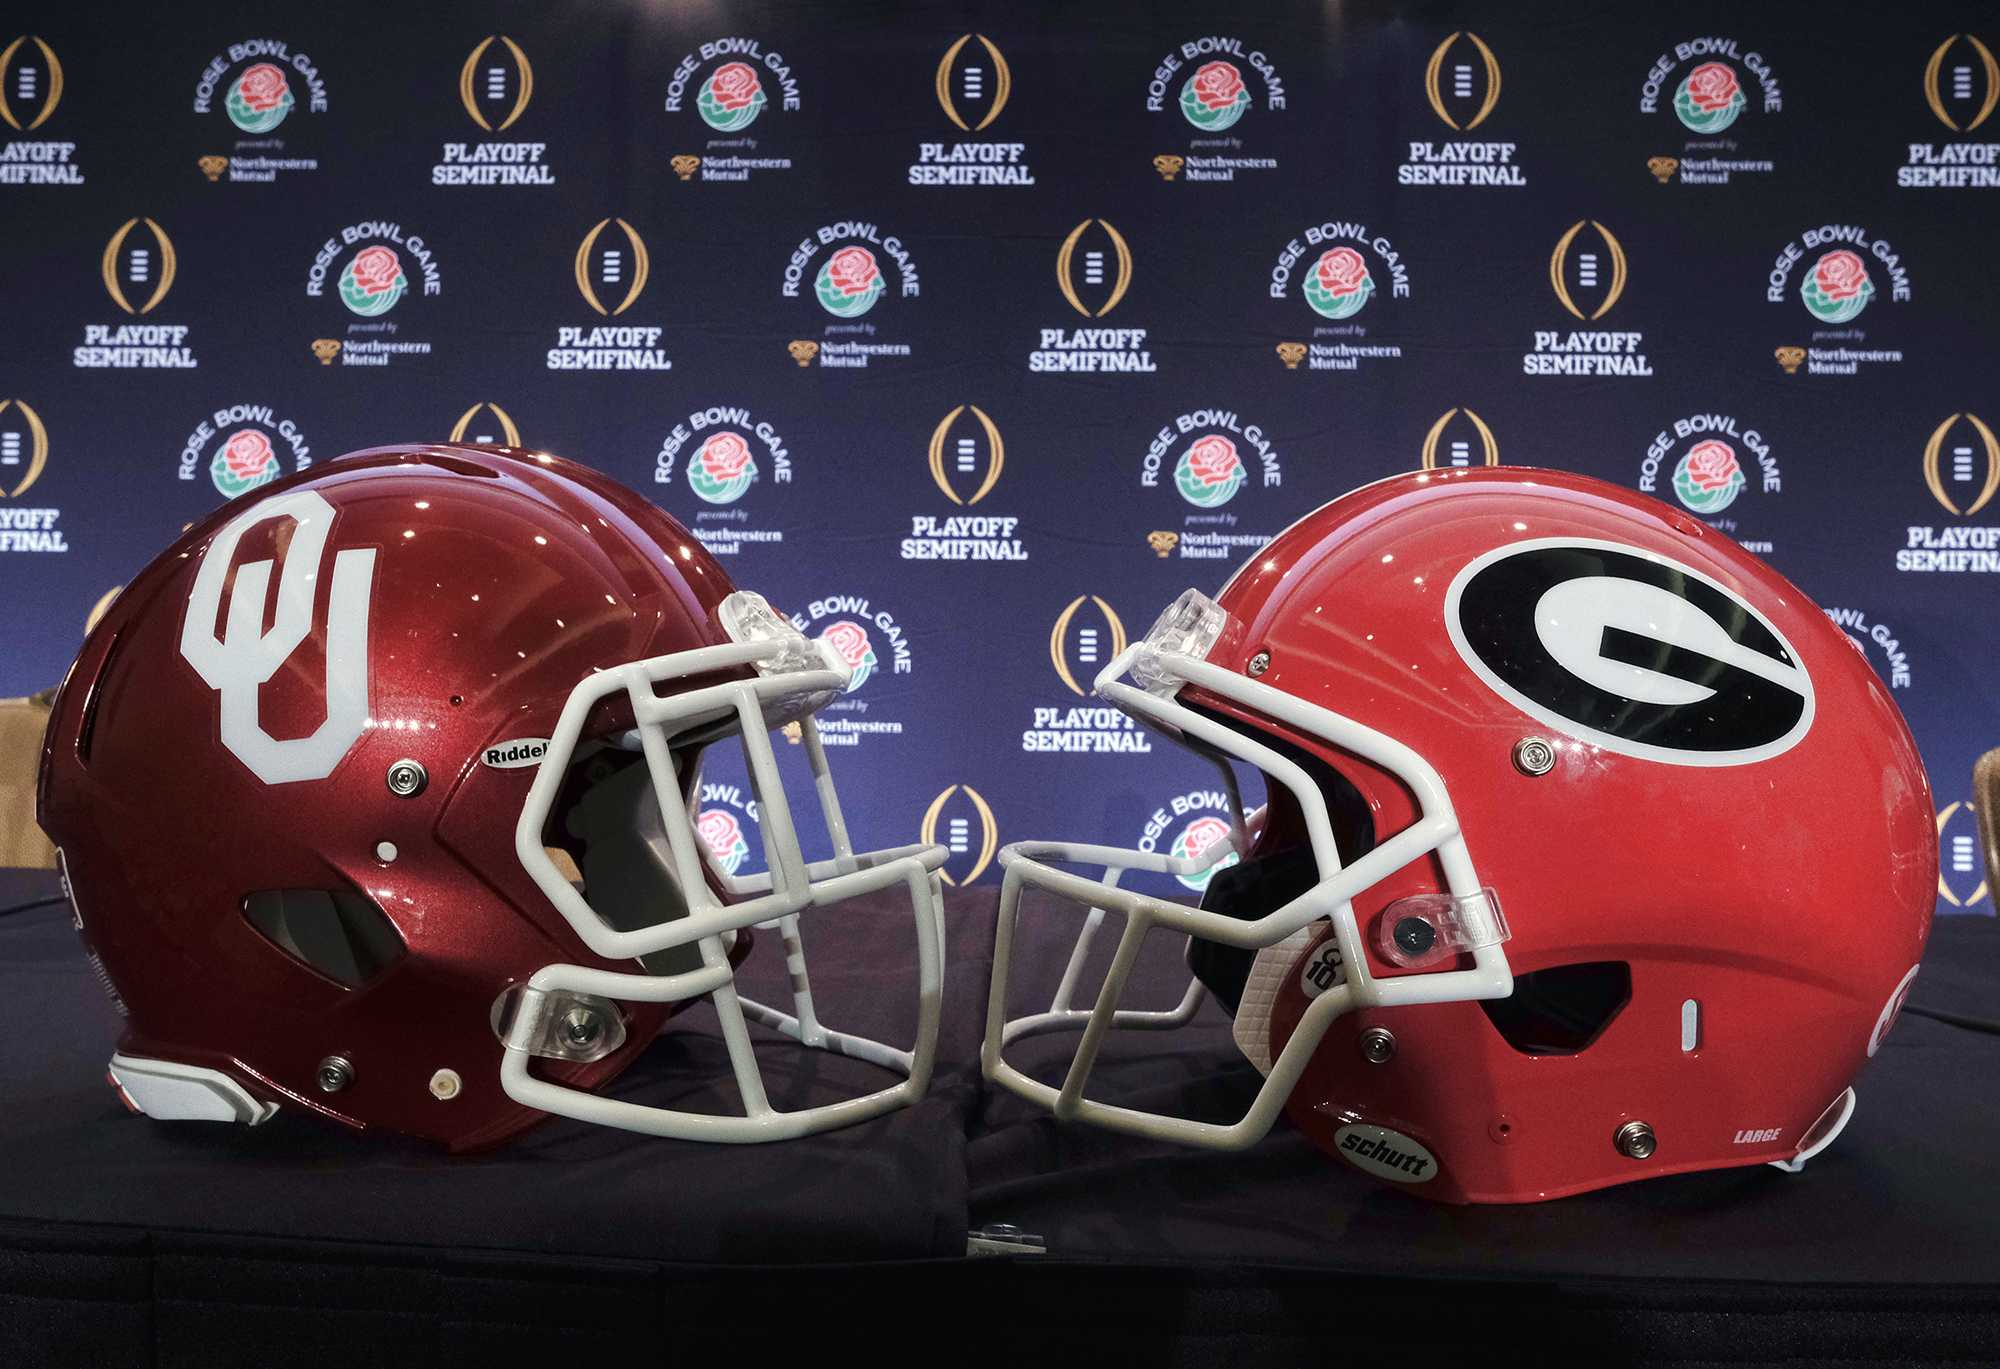 Rushing duo carries Bulldogs over Sooners in epic Rose Bowl finish